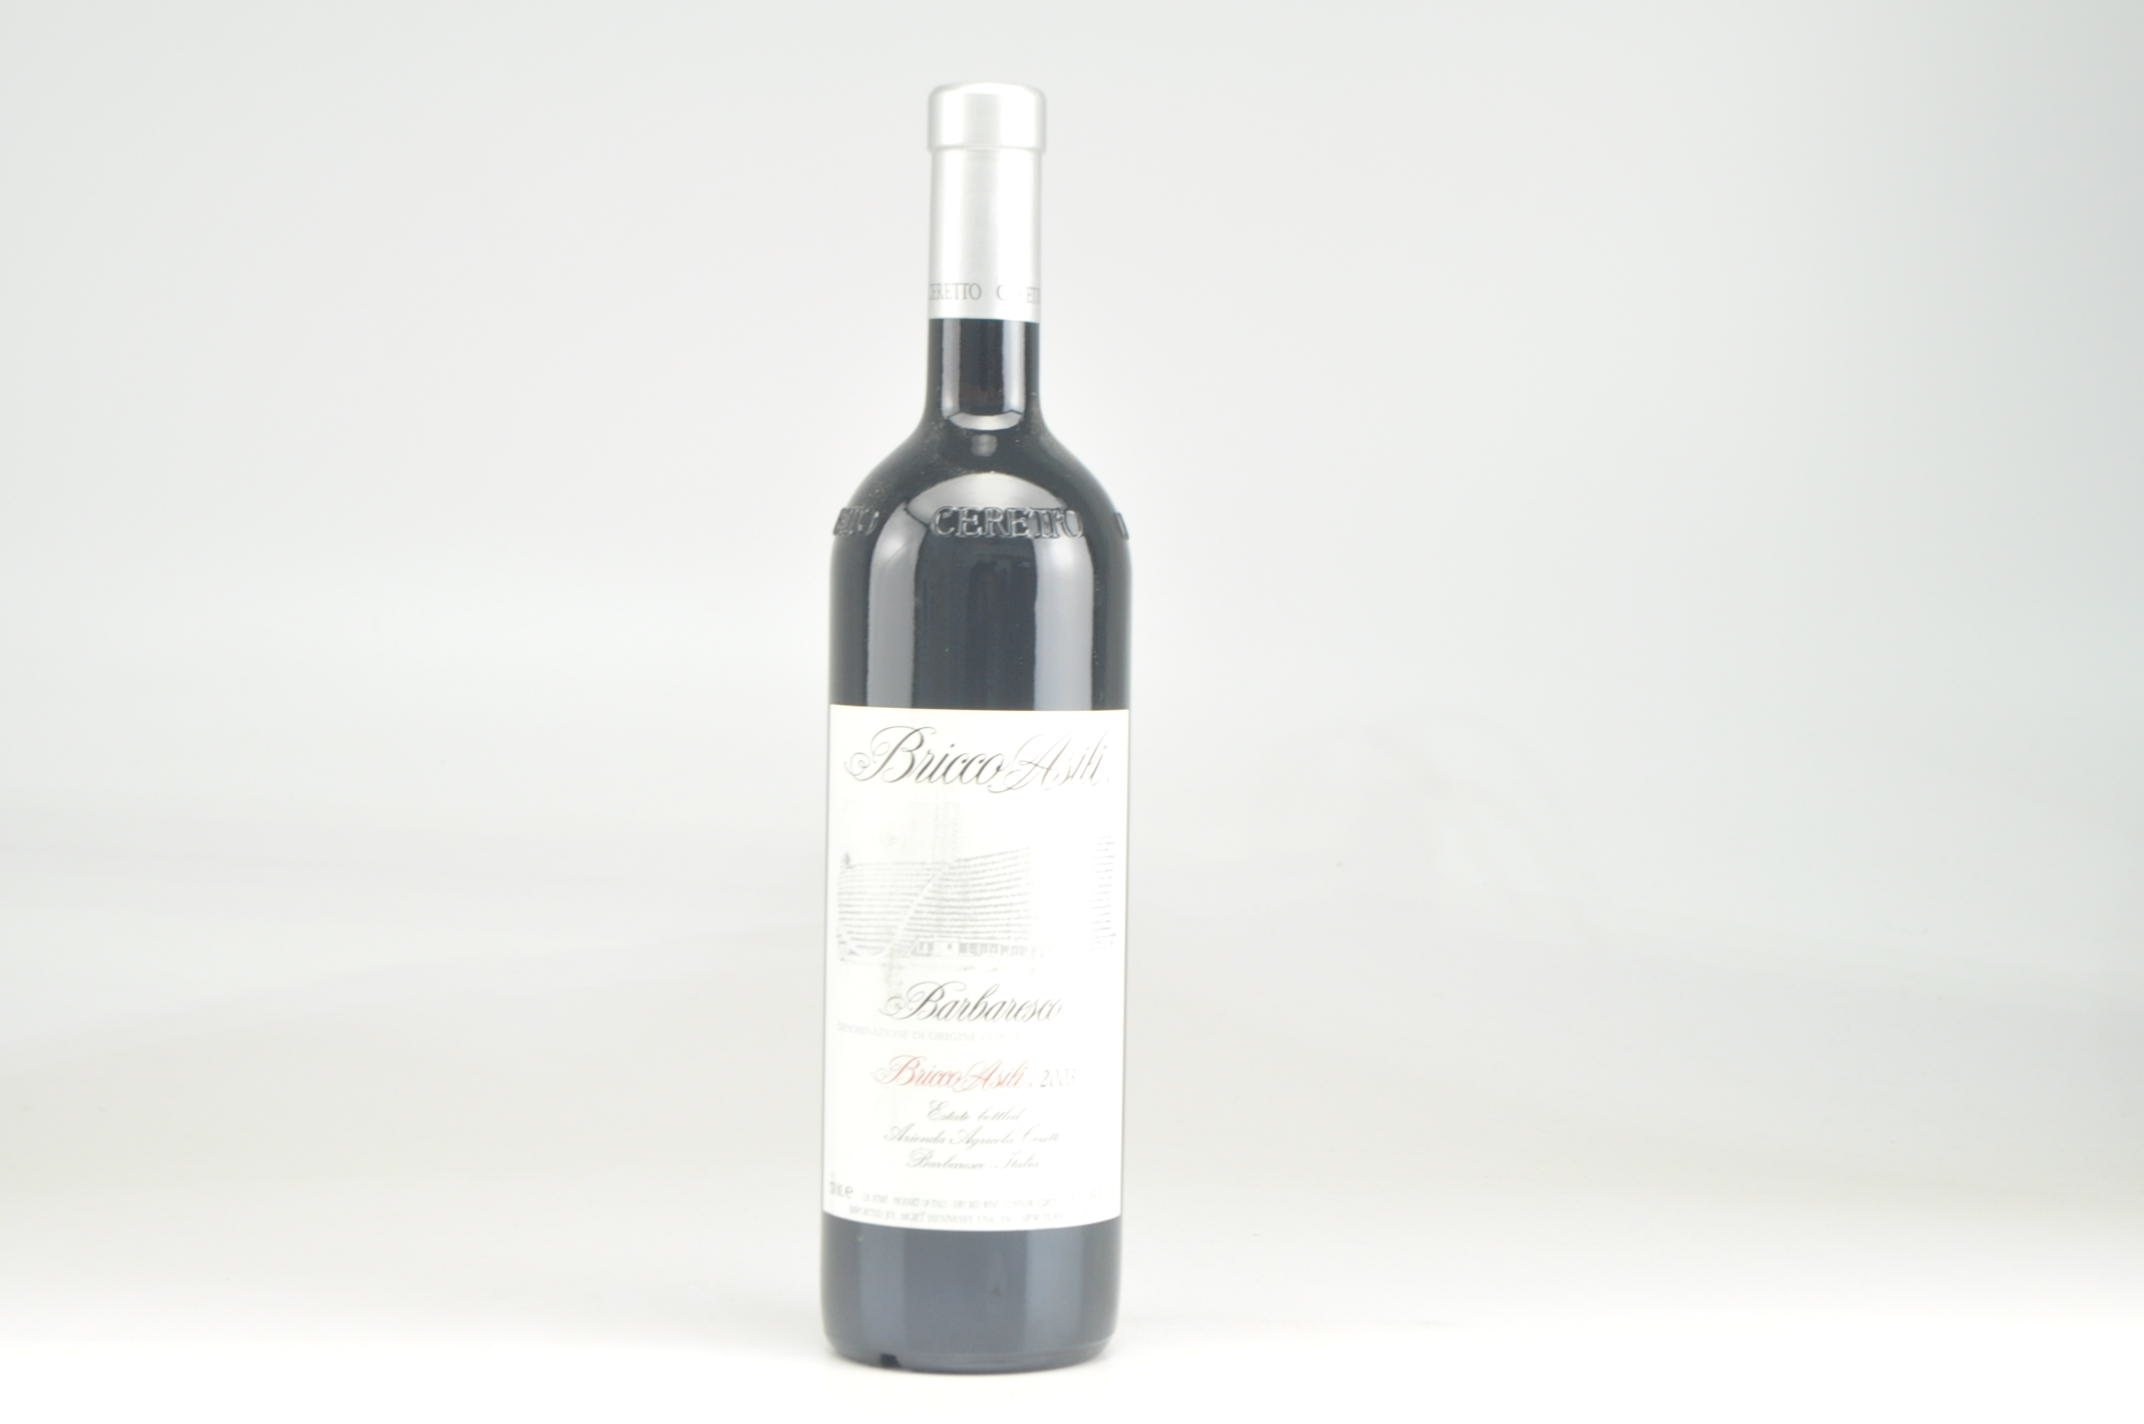 2003 Ceretto Bricco Asili Barbaresco, DOCG RP--89